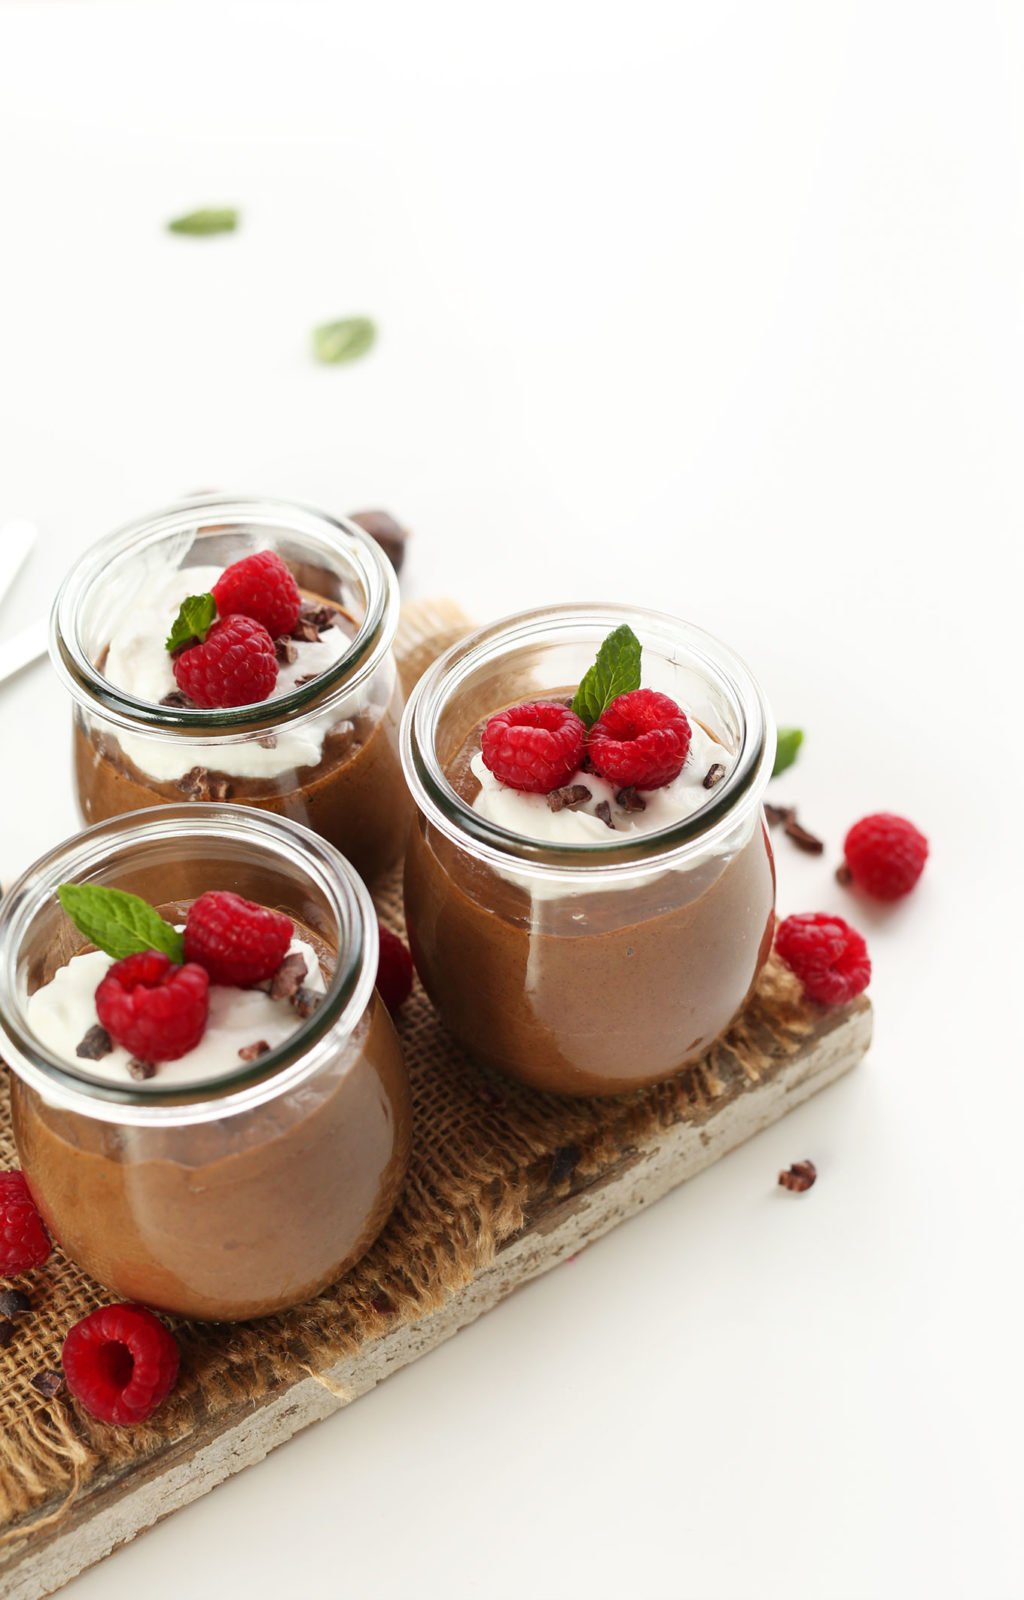 EASY-6-ingredient-Chia-Seed-Pudding-thats-creamy-rich-and-naturally-sweetened-vegan-glutenfree-chocolate